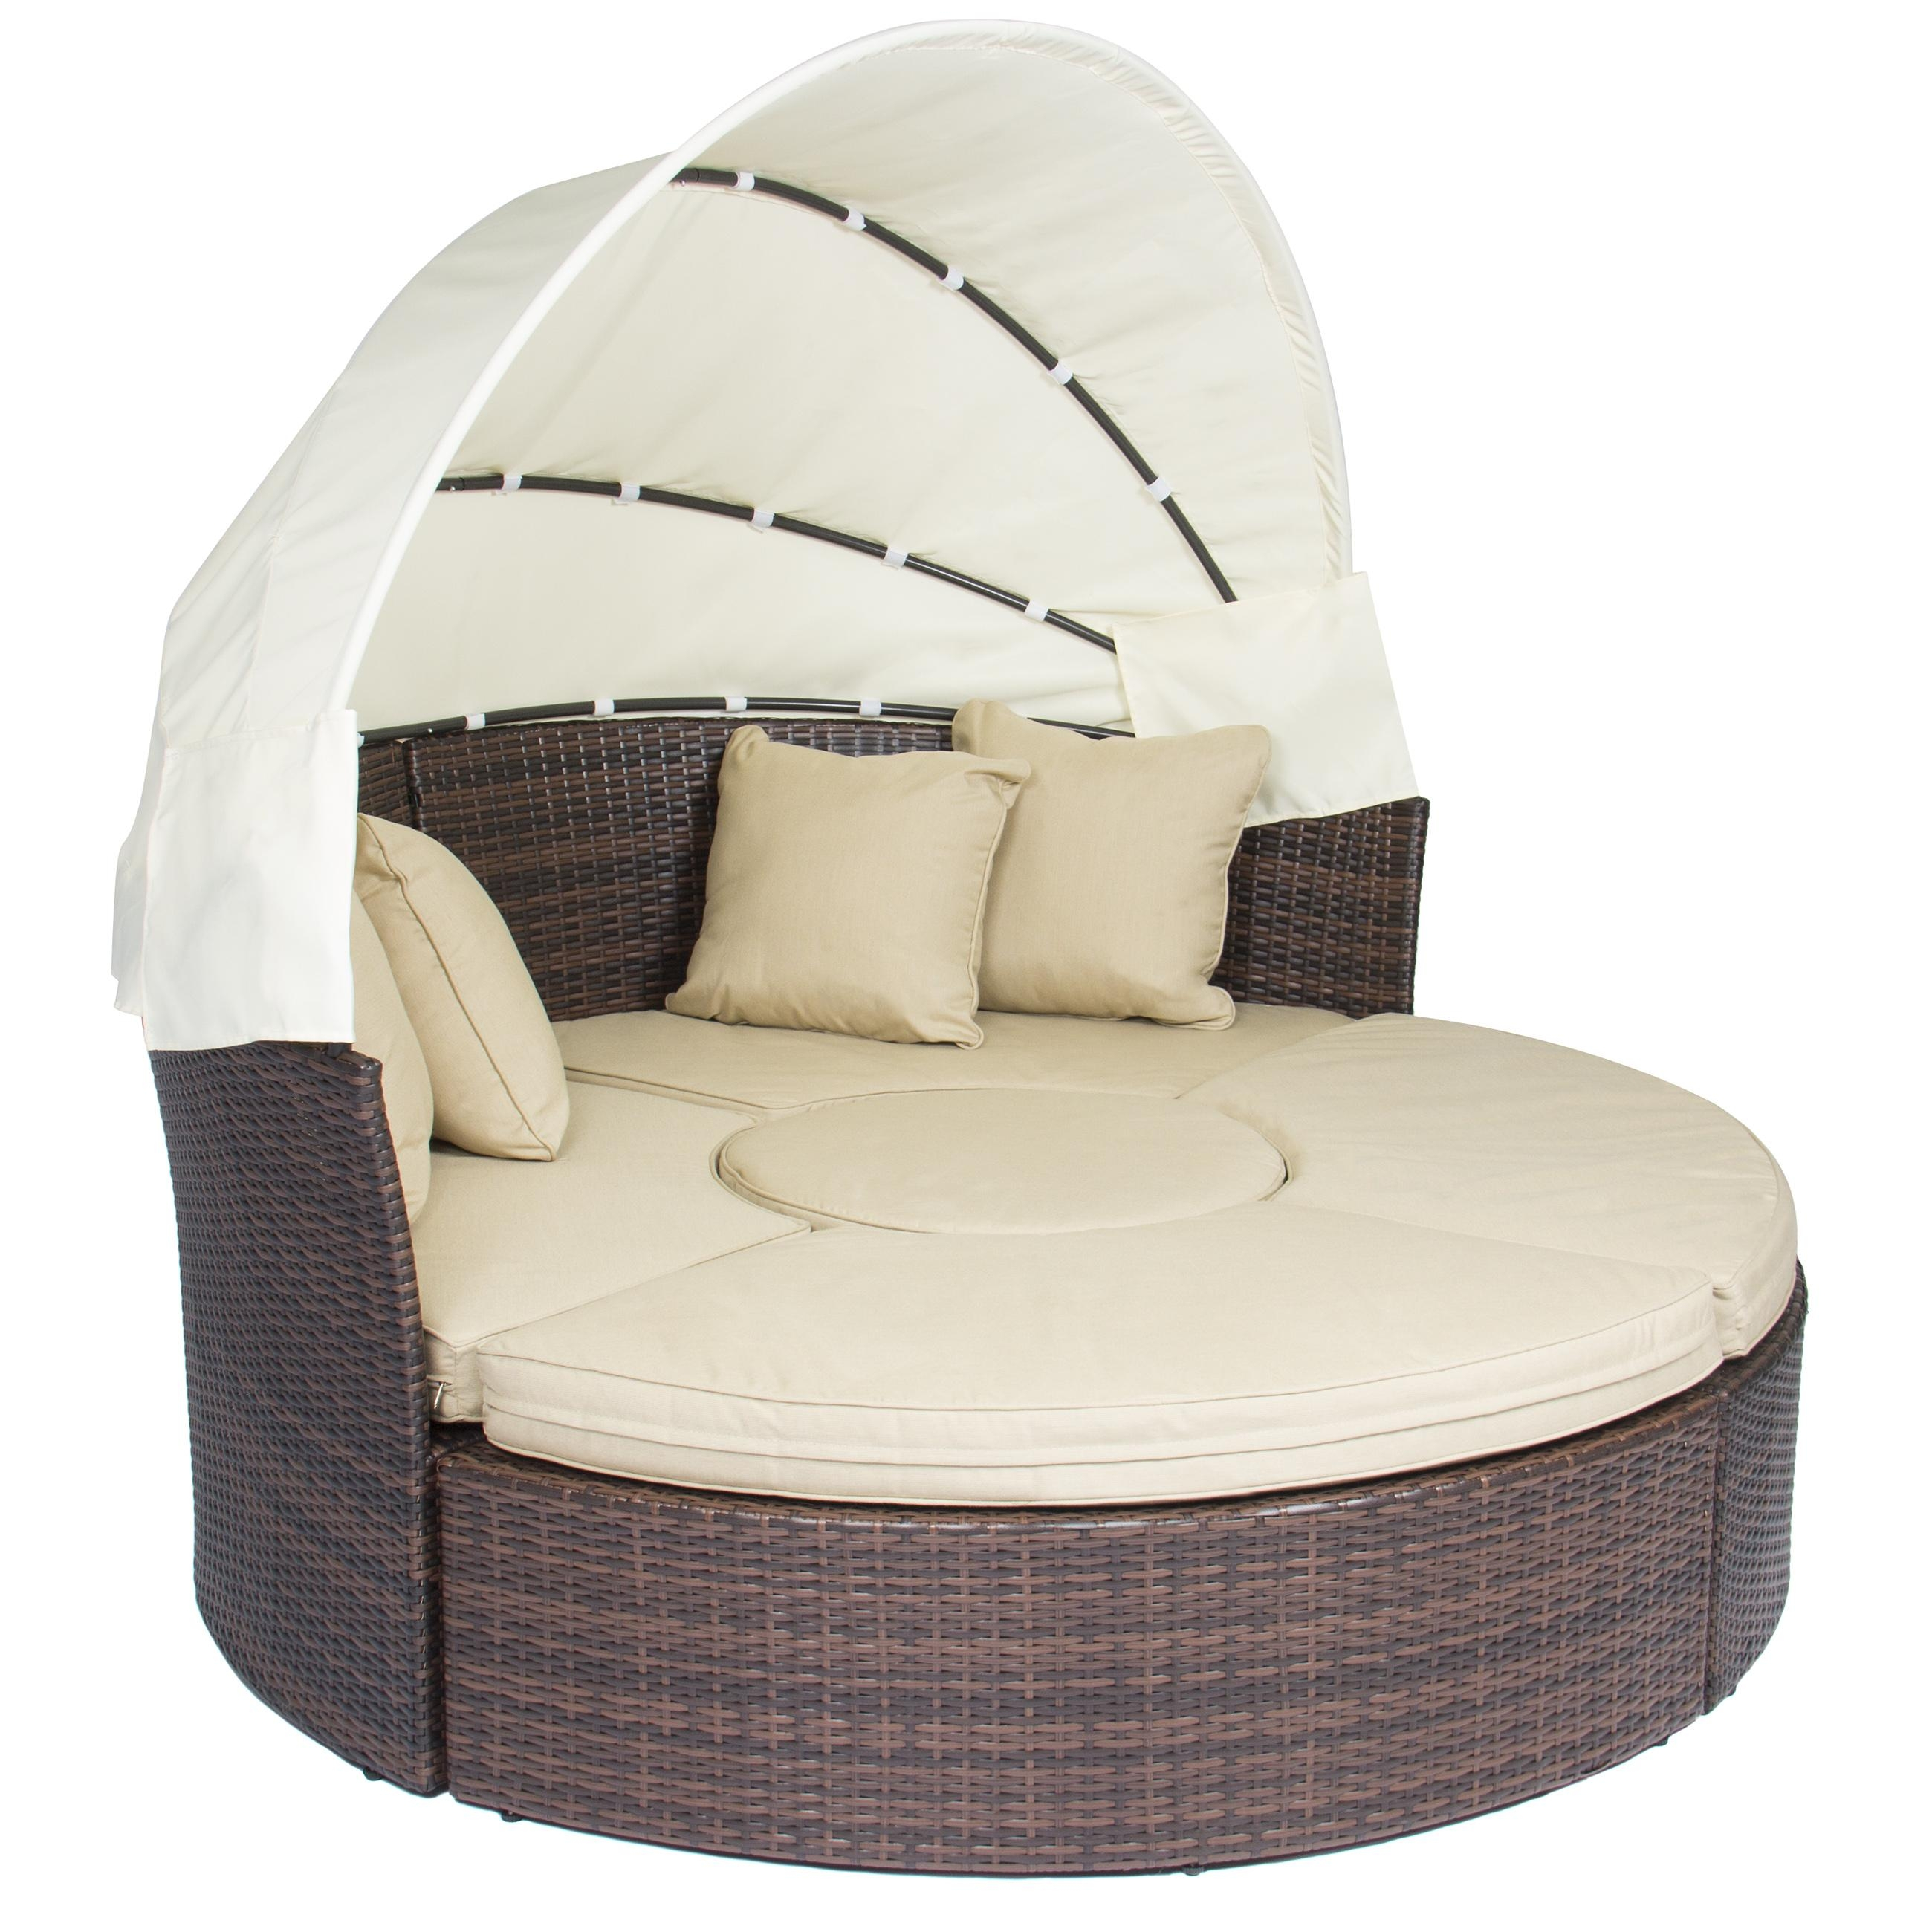 Sofas Center : Round Circle Sofa Chaircircular Chairround Chair For Circle Sofa Chairs (View 12 of 20)